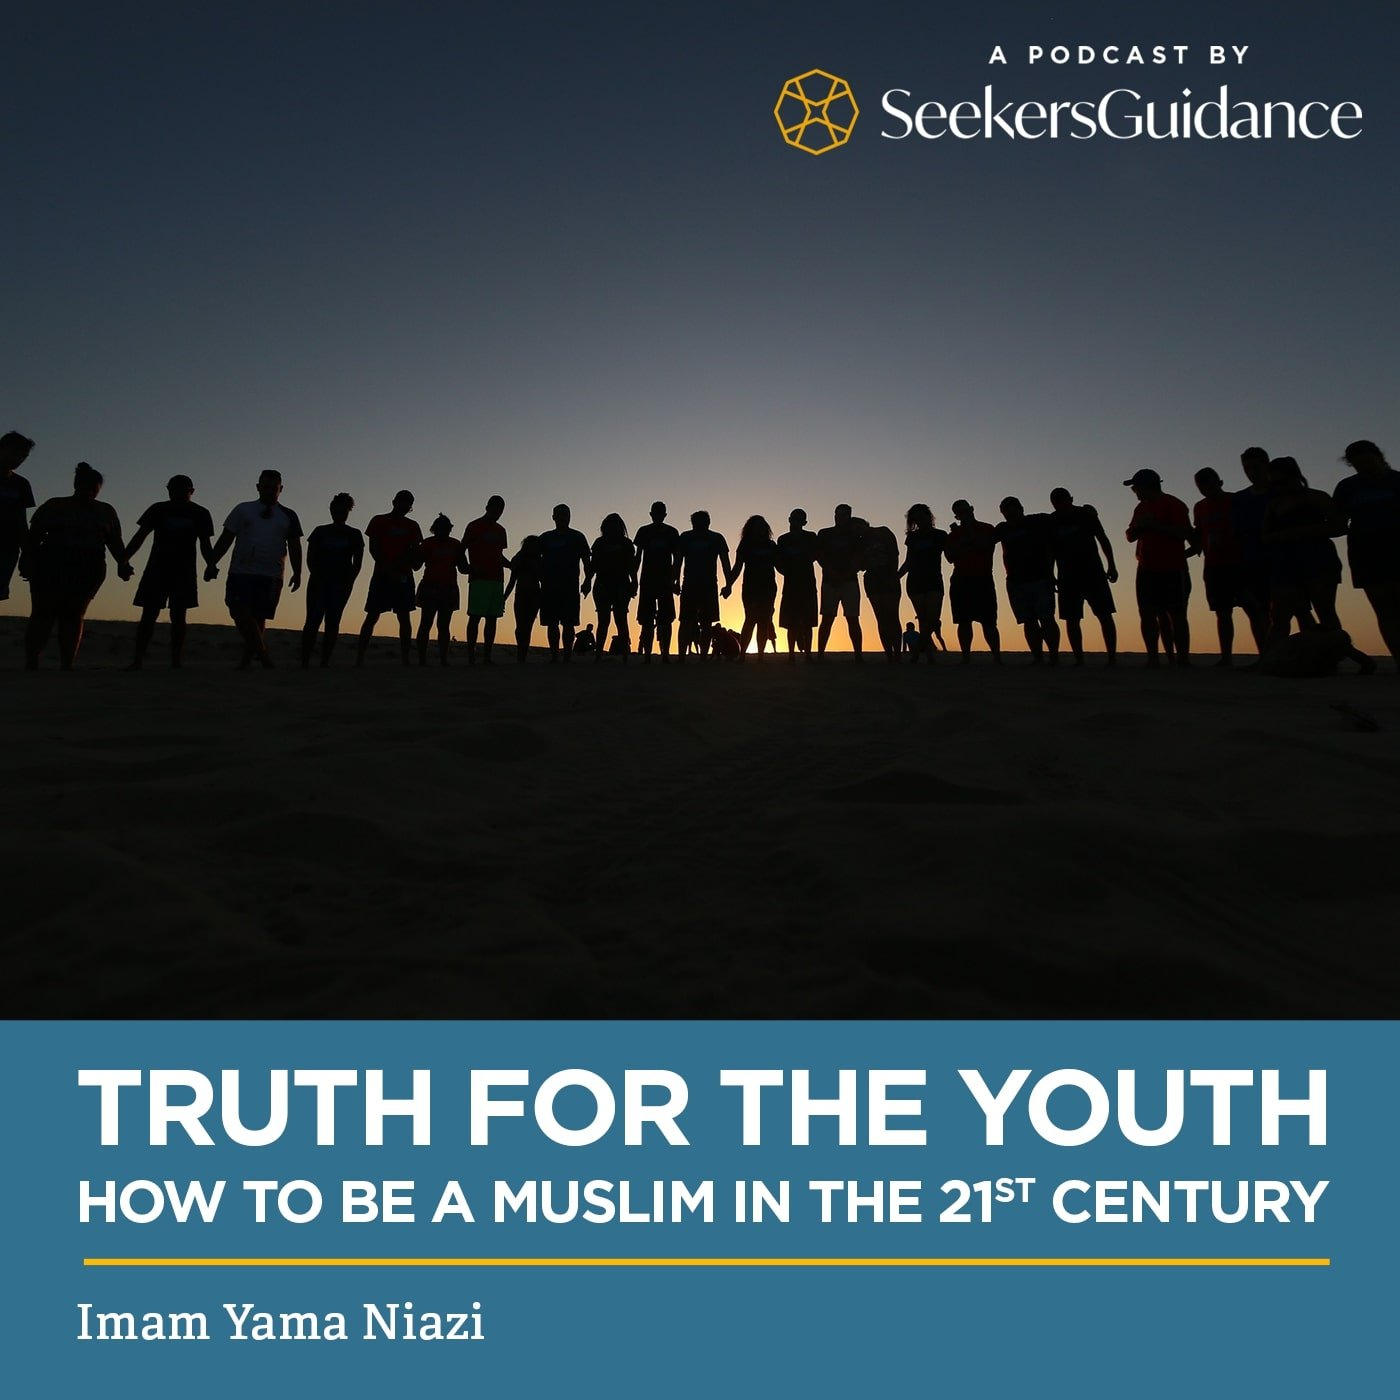 Truth for the Youth: How to be a Muslim in the 21st Century